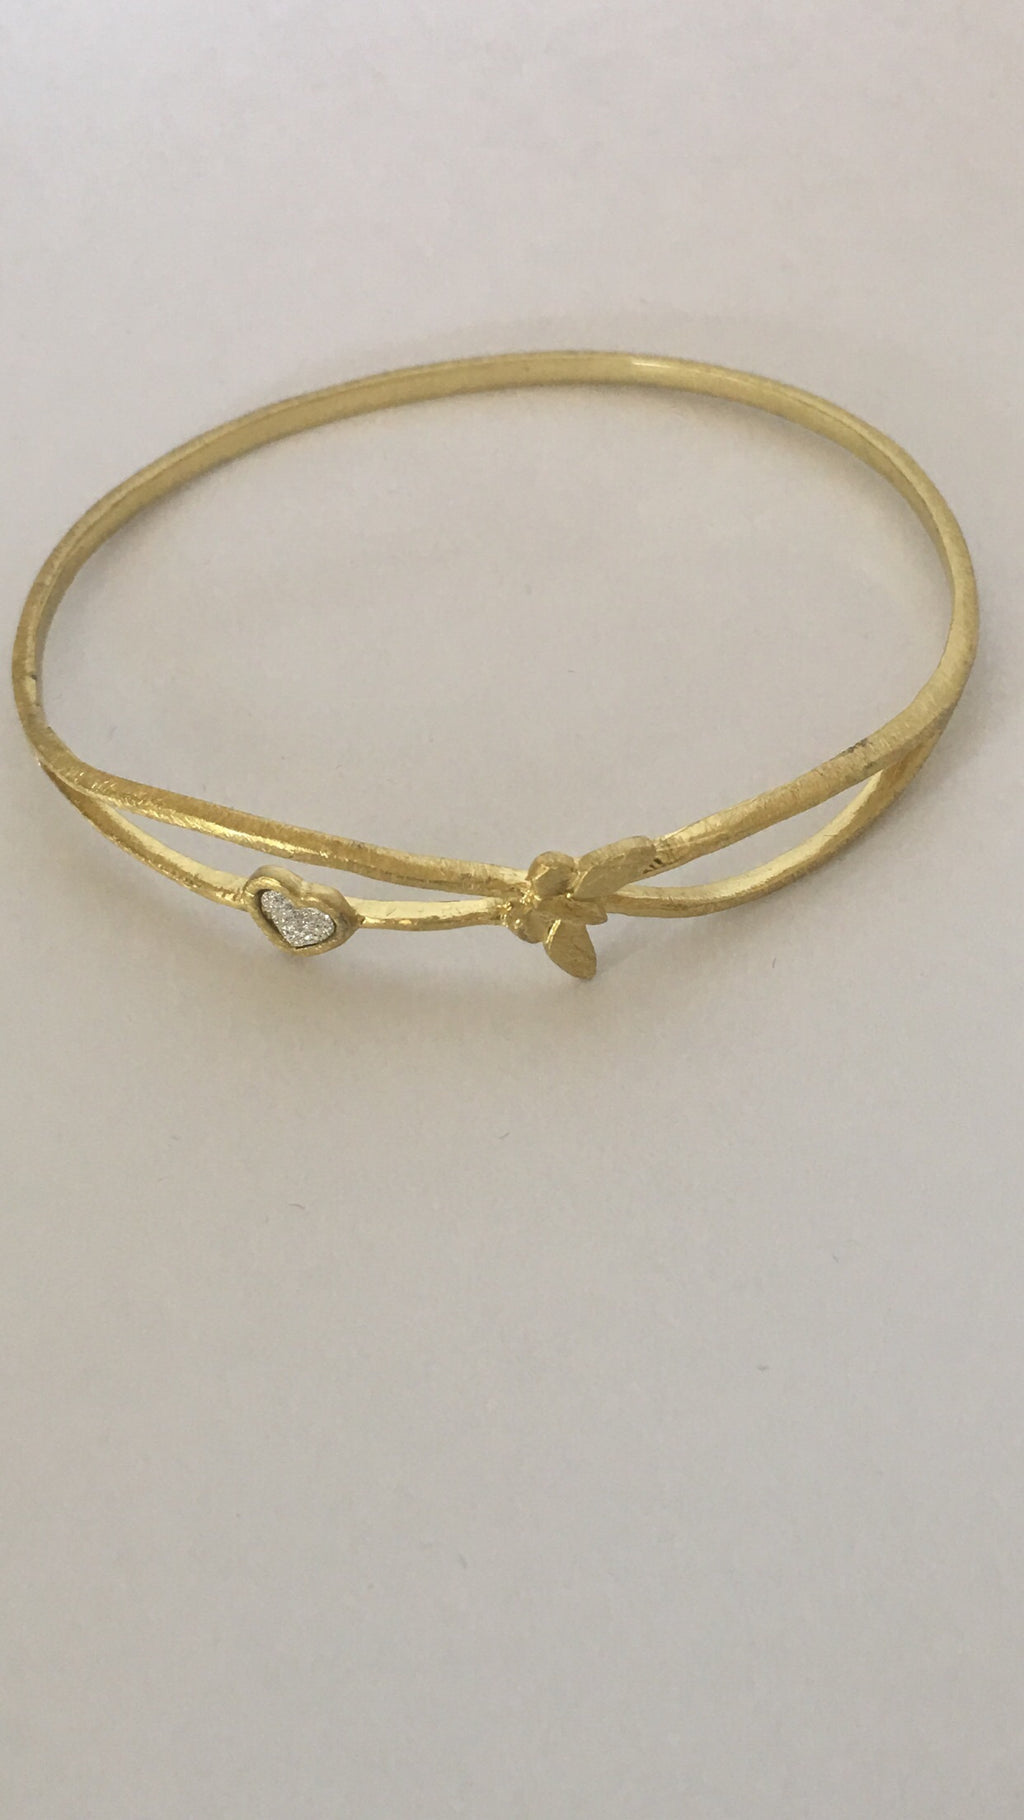 Bracelet Gold Plated with Heart and Butterfly